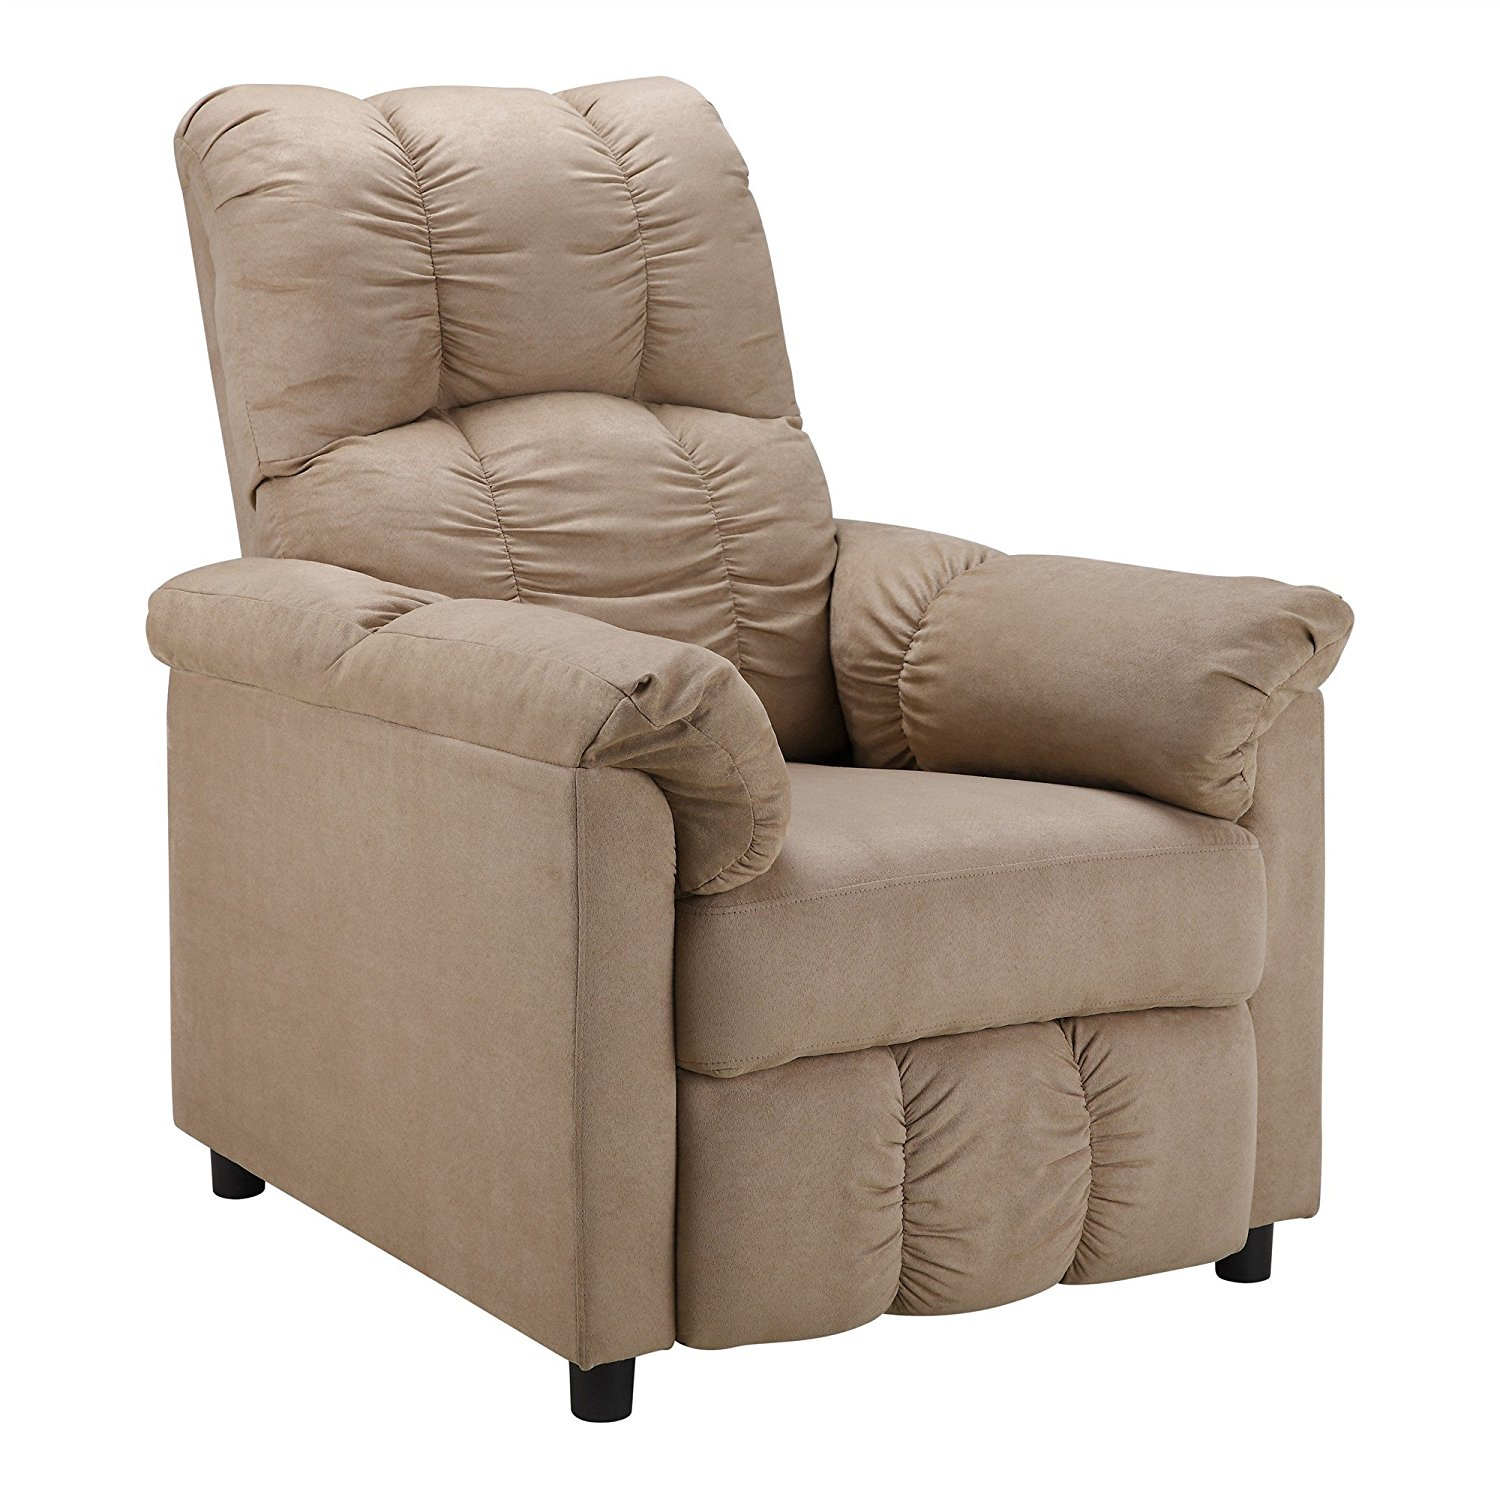 Recliner Covers | Recliner Slipcovers | Fleece Recliner Chair Covers